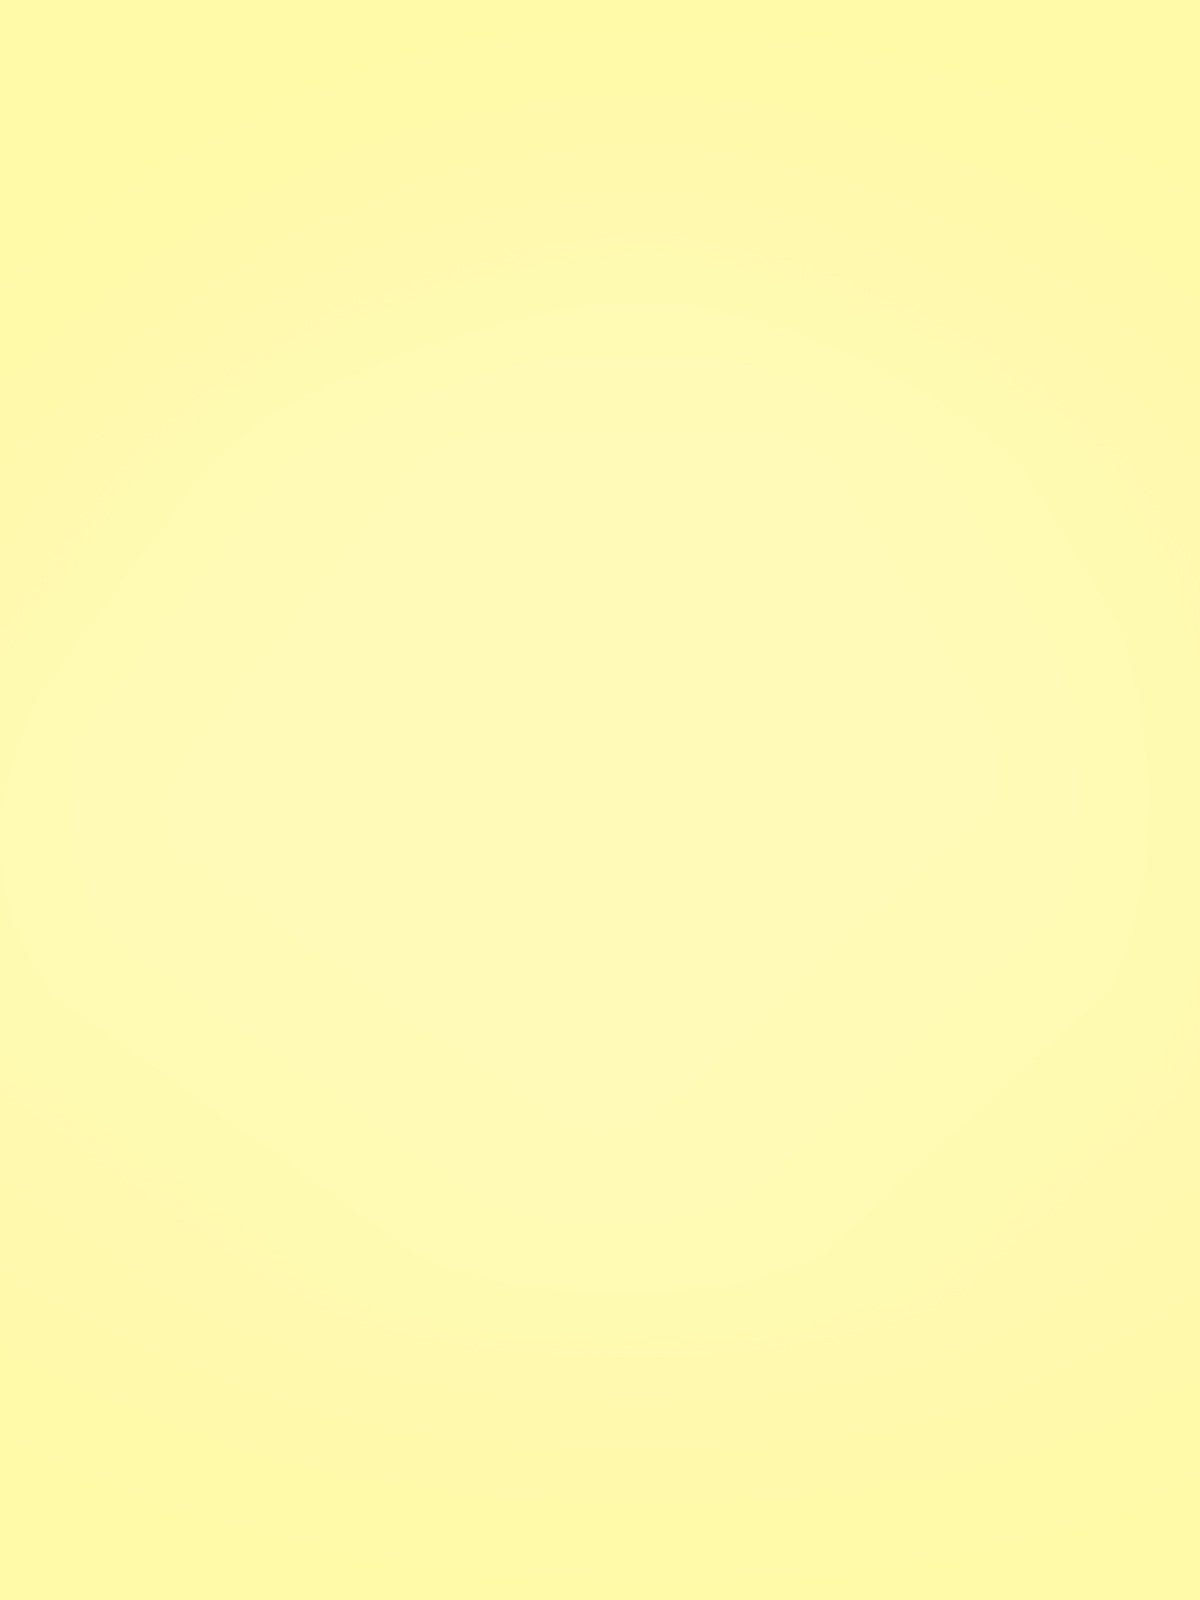 Lemon Yellow Solid Printed Photo Background / 9103 - DropPlace